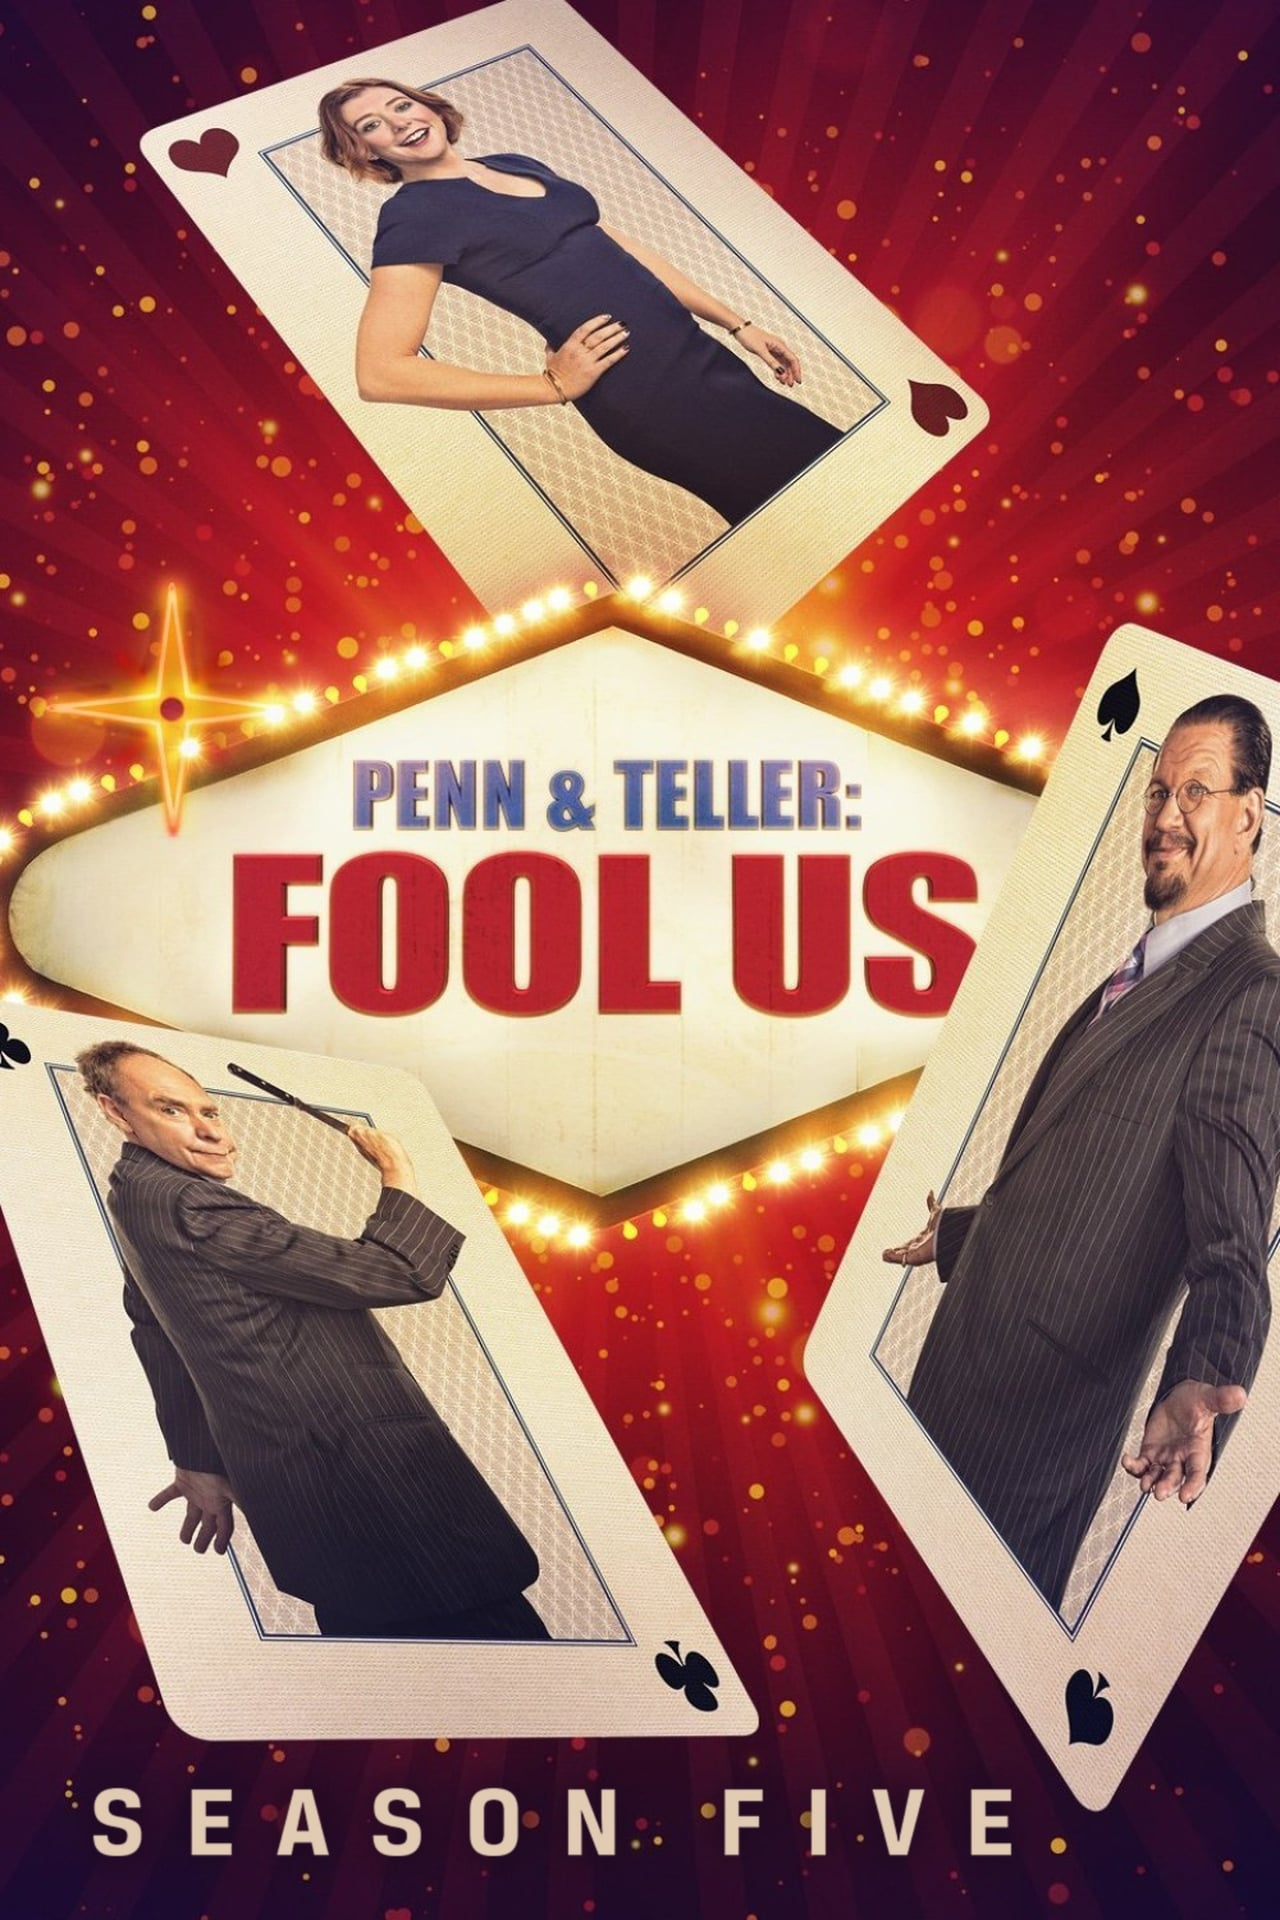 Watch Penn & Teller: Fool Us Season 5 Online